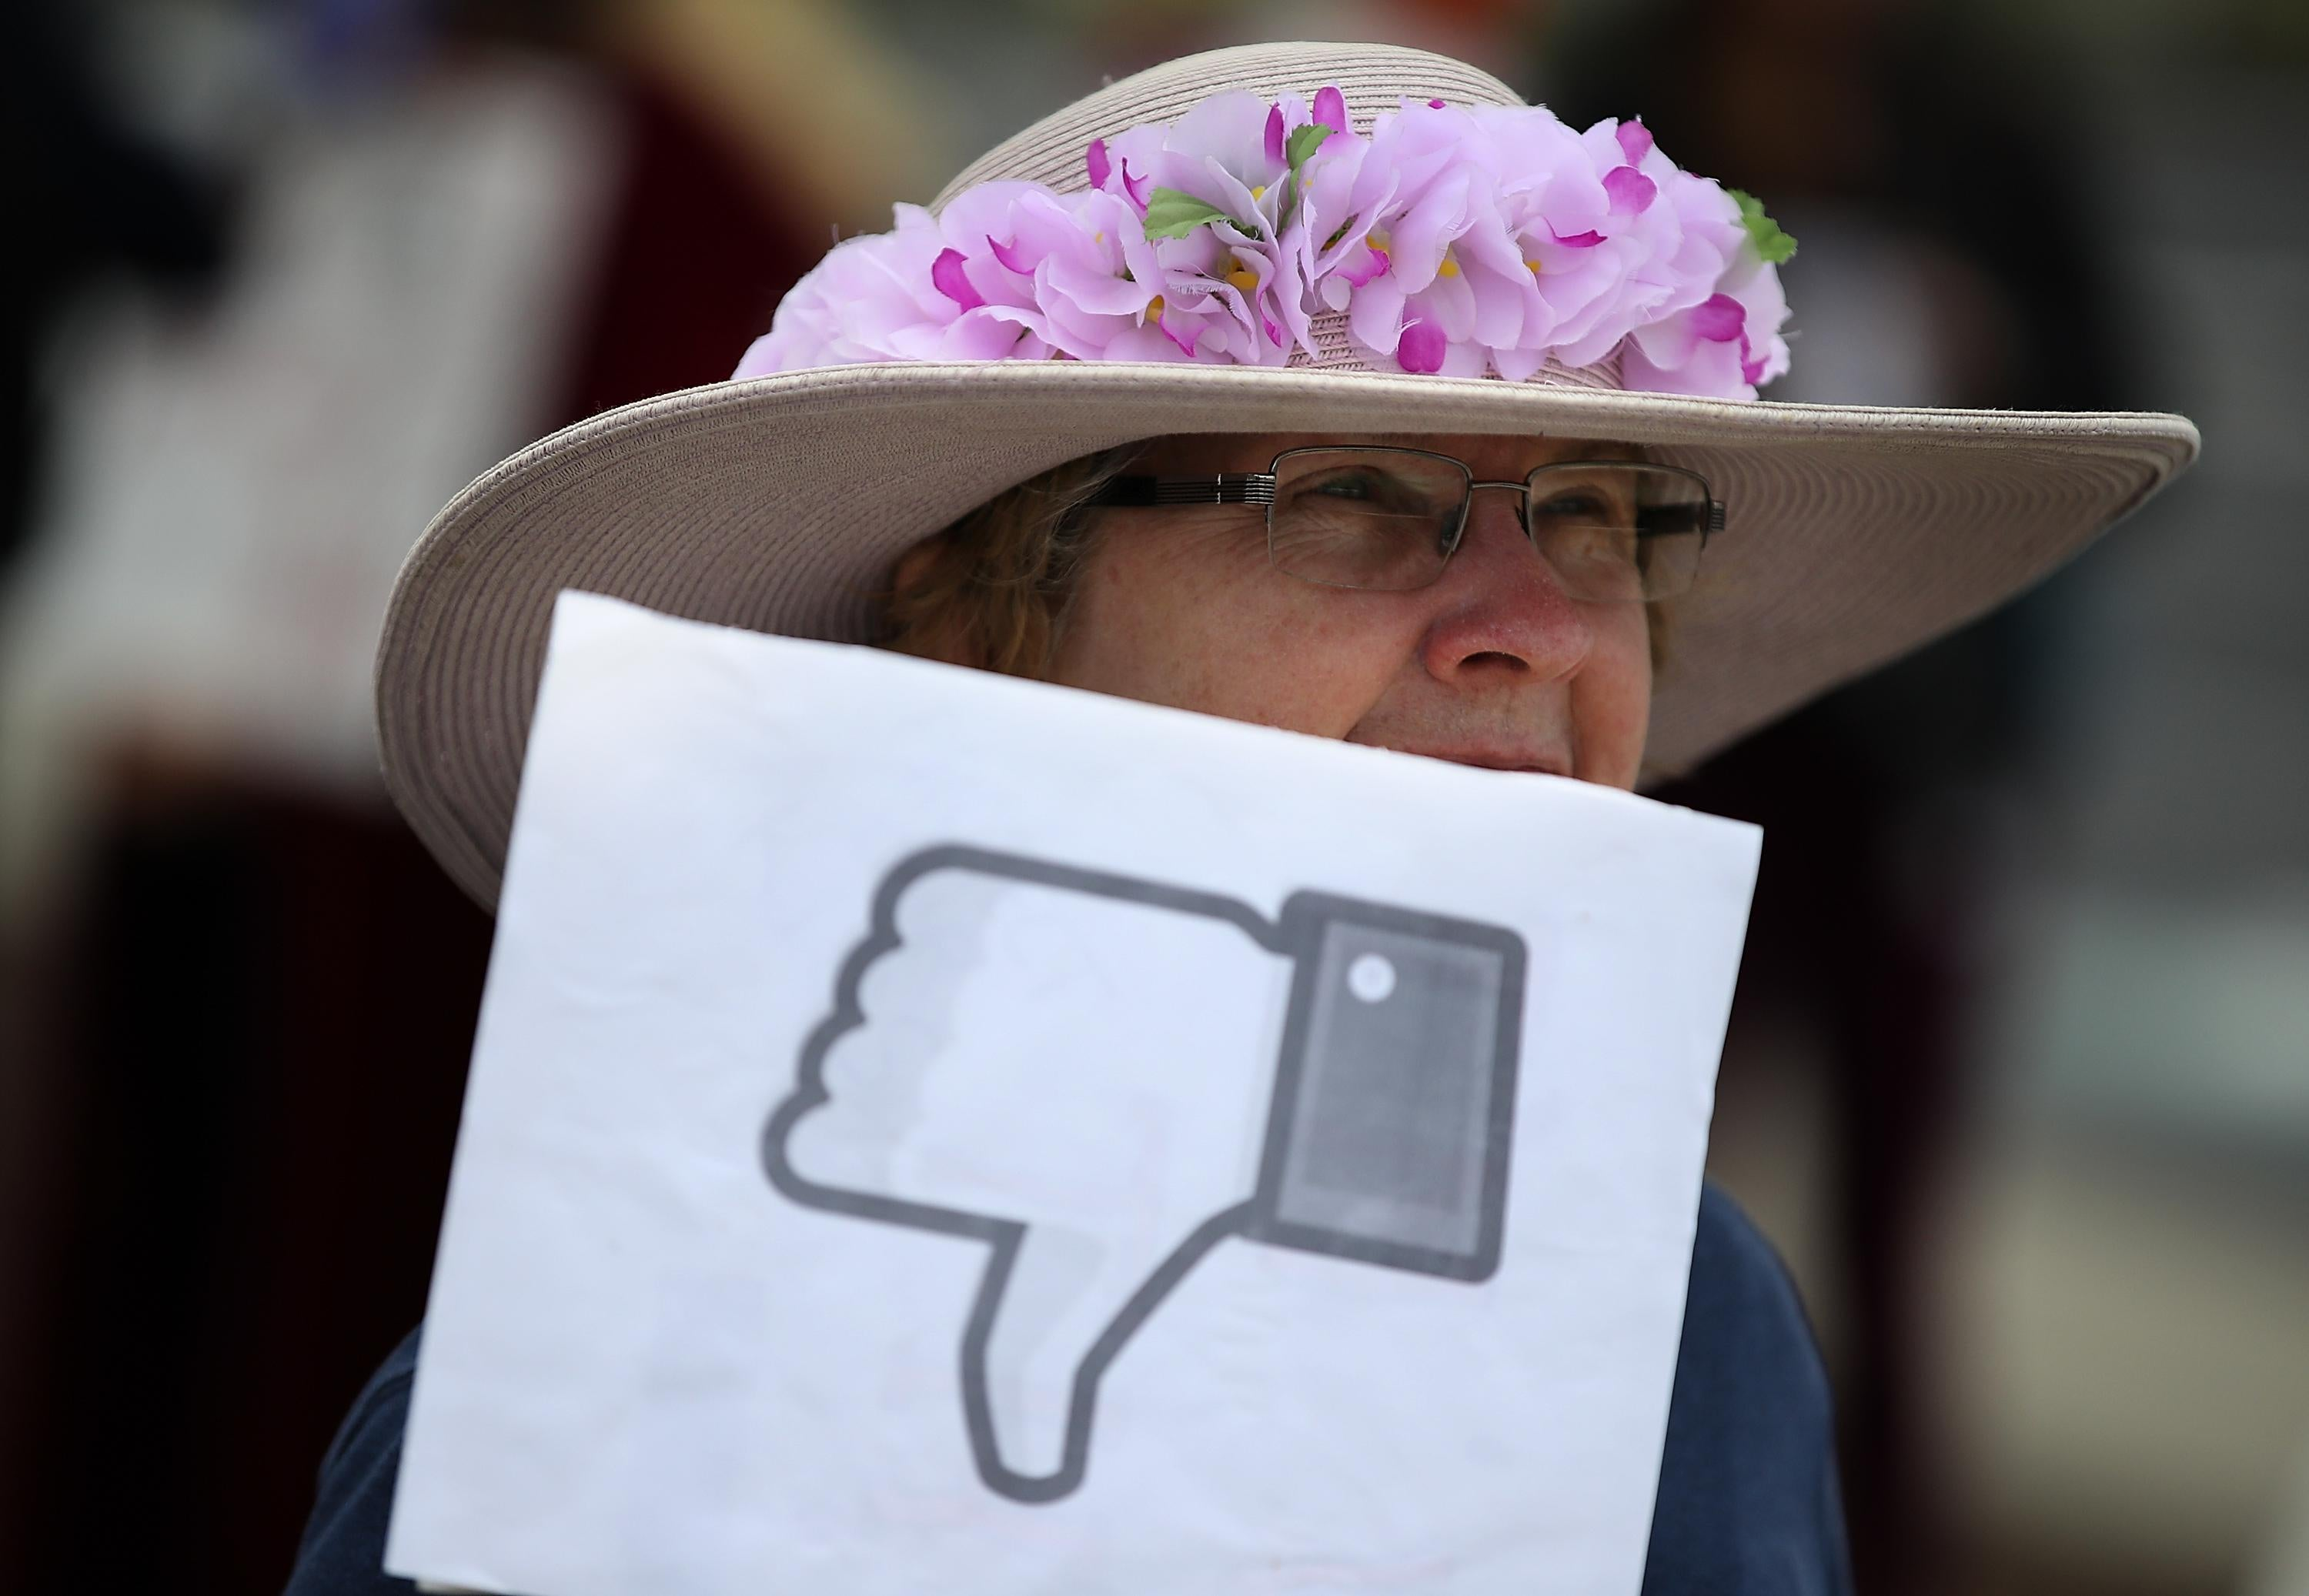 Woman holds a sign with the Facebook thumbs down symbol